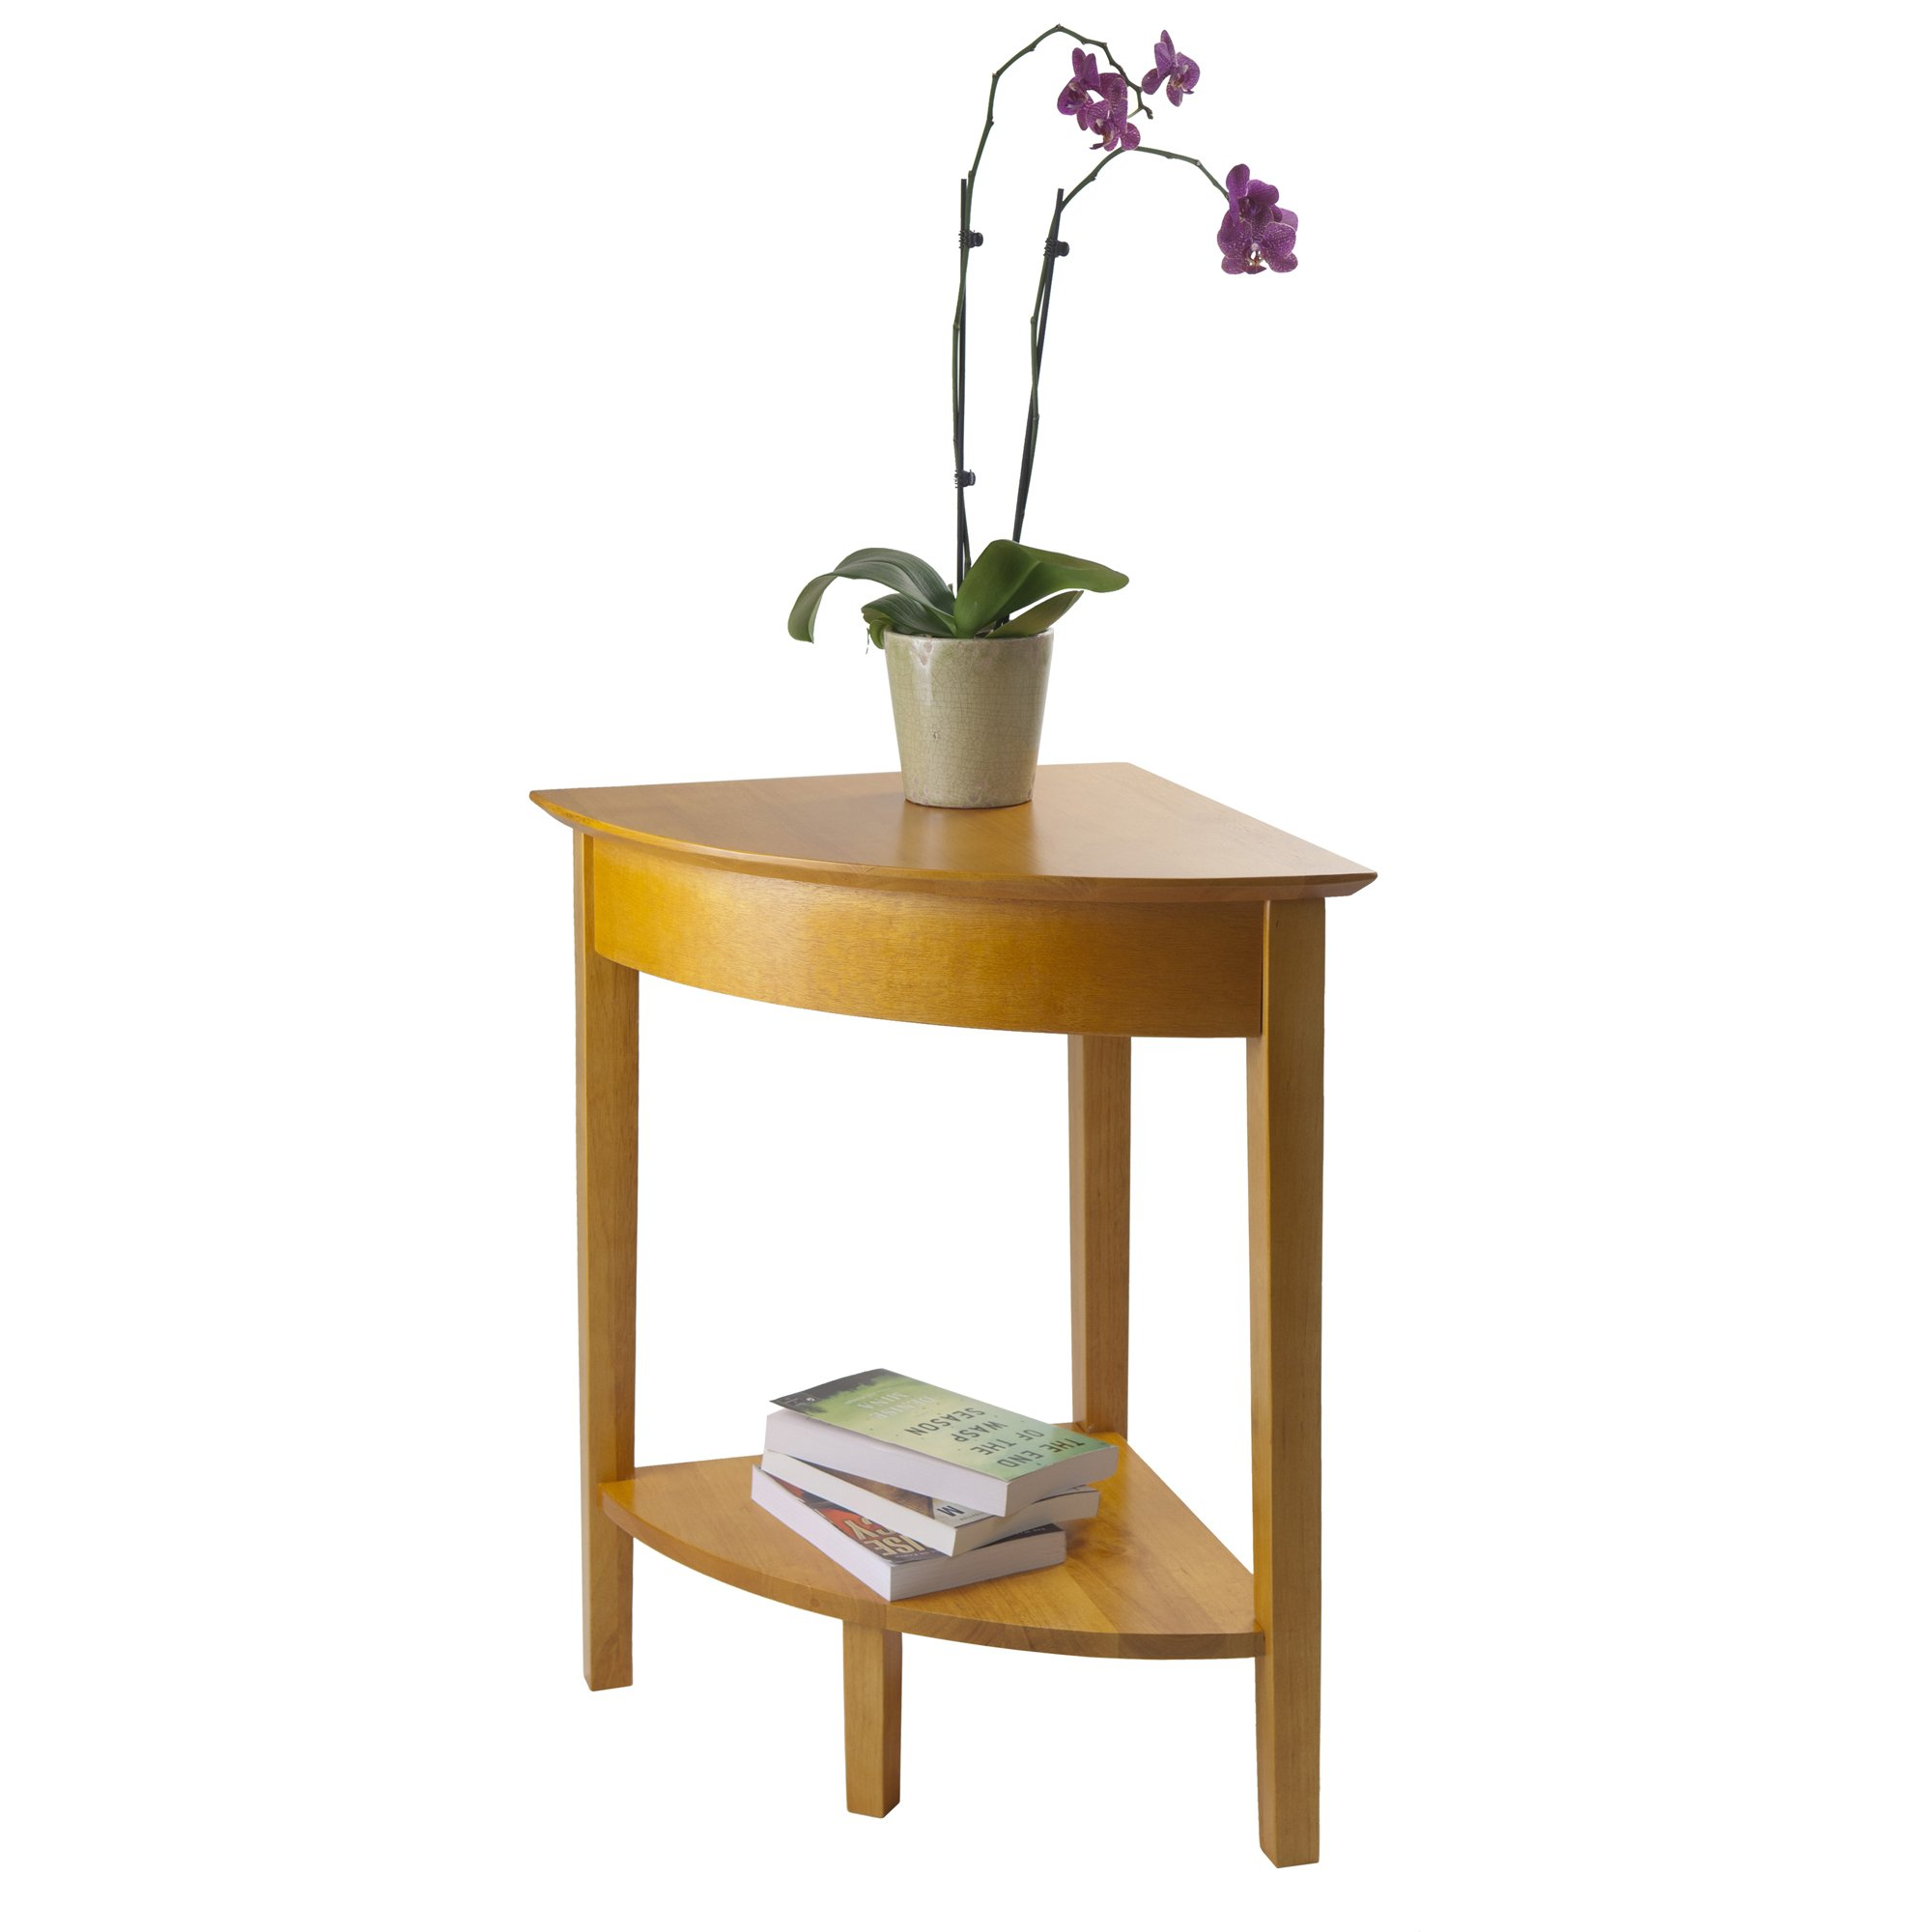 Winsome Wood Corner Desk with Shelf, Honey by Winsome Wood (Image #5)